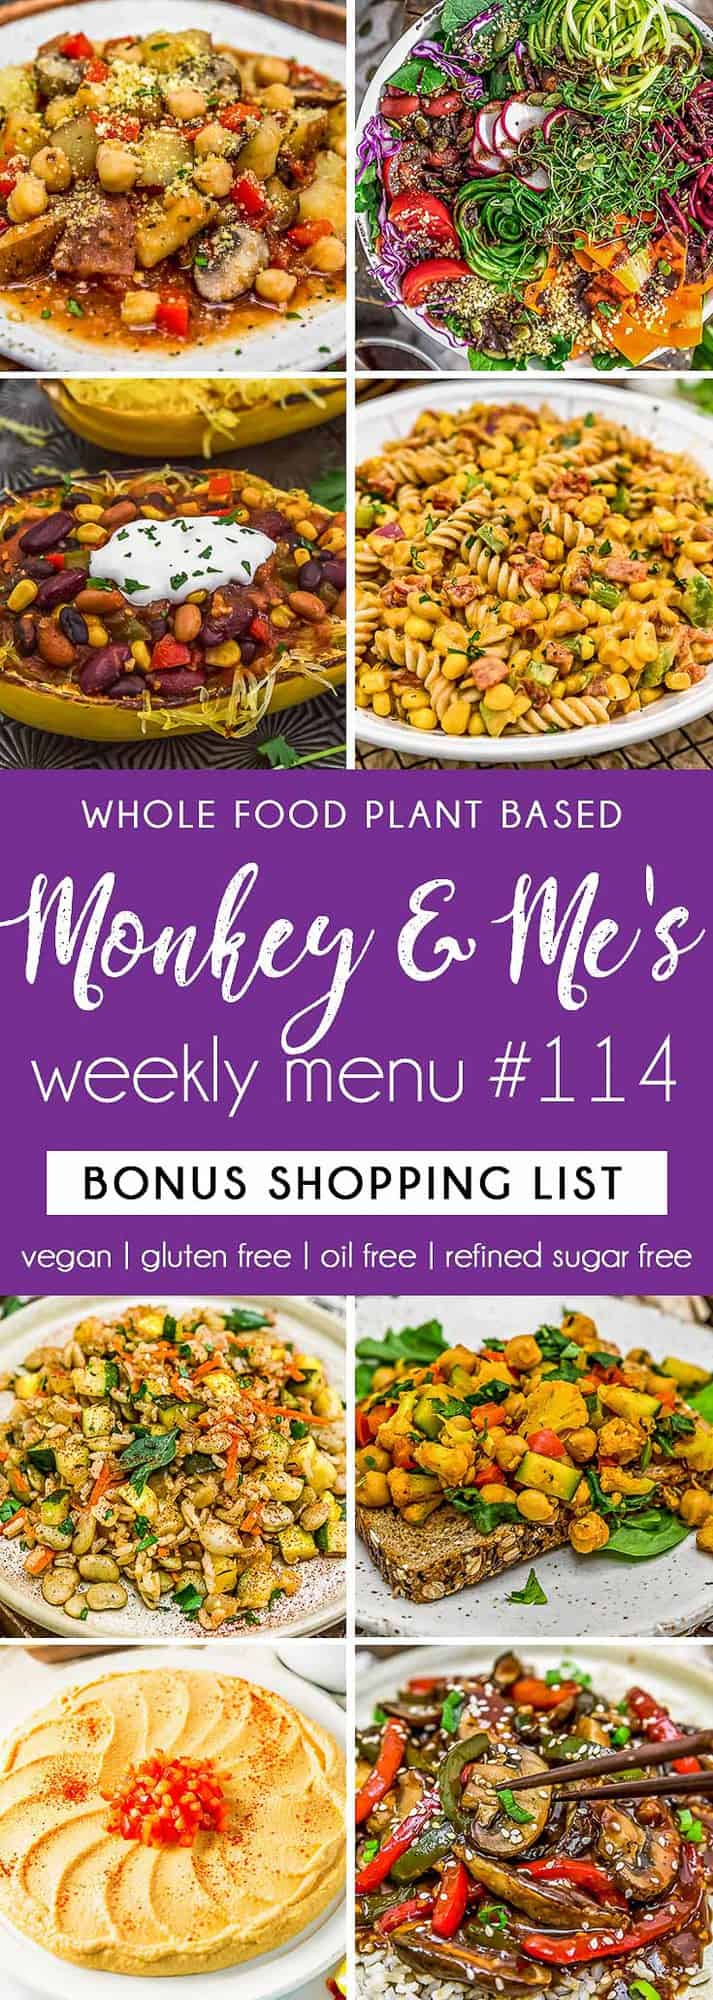 Monkey and Me's Menu 114 featuring 8 recipes